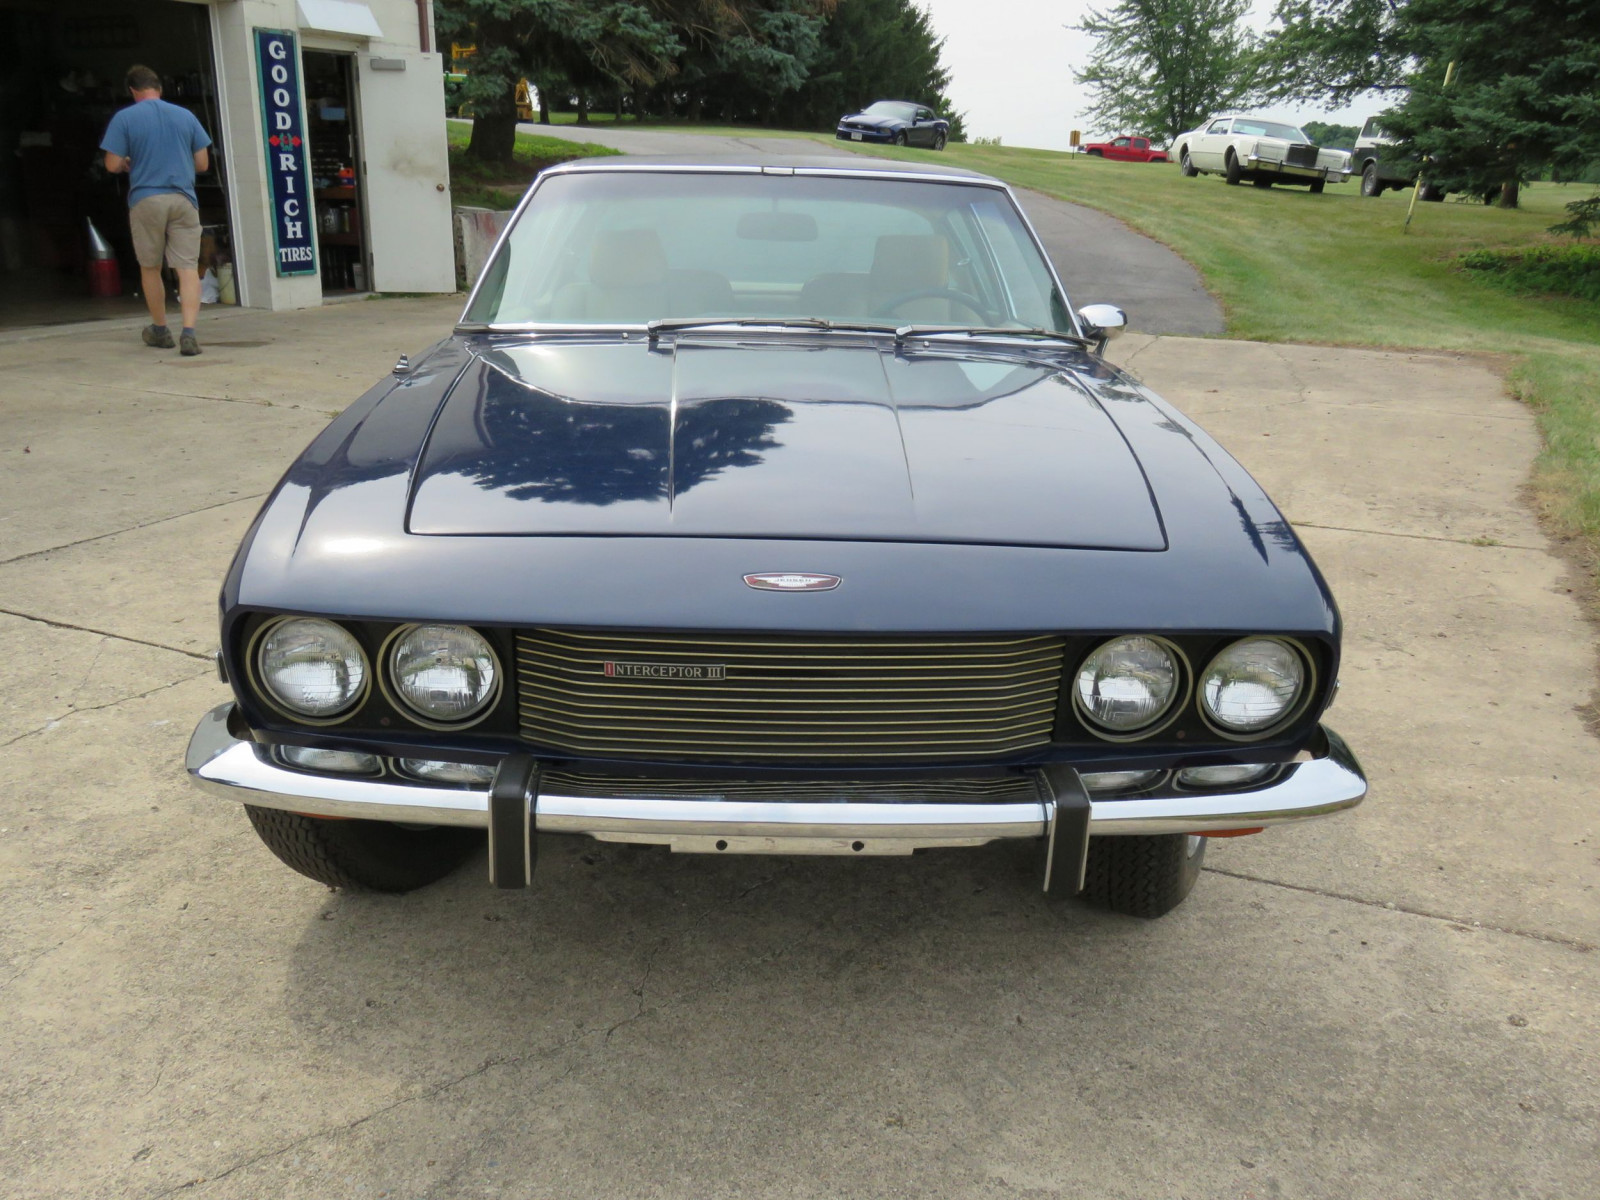 1973 Jensen Interceptor III Coupe - Image 2